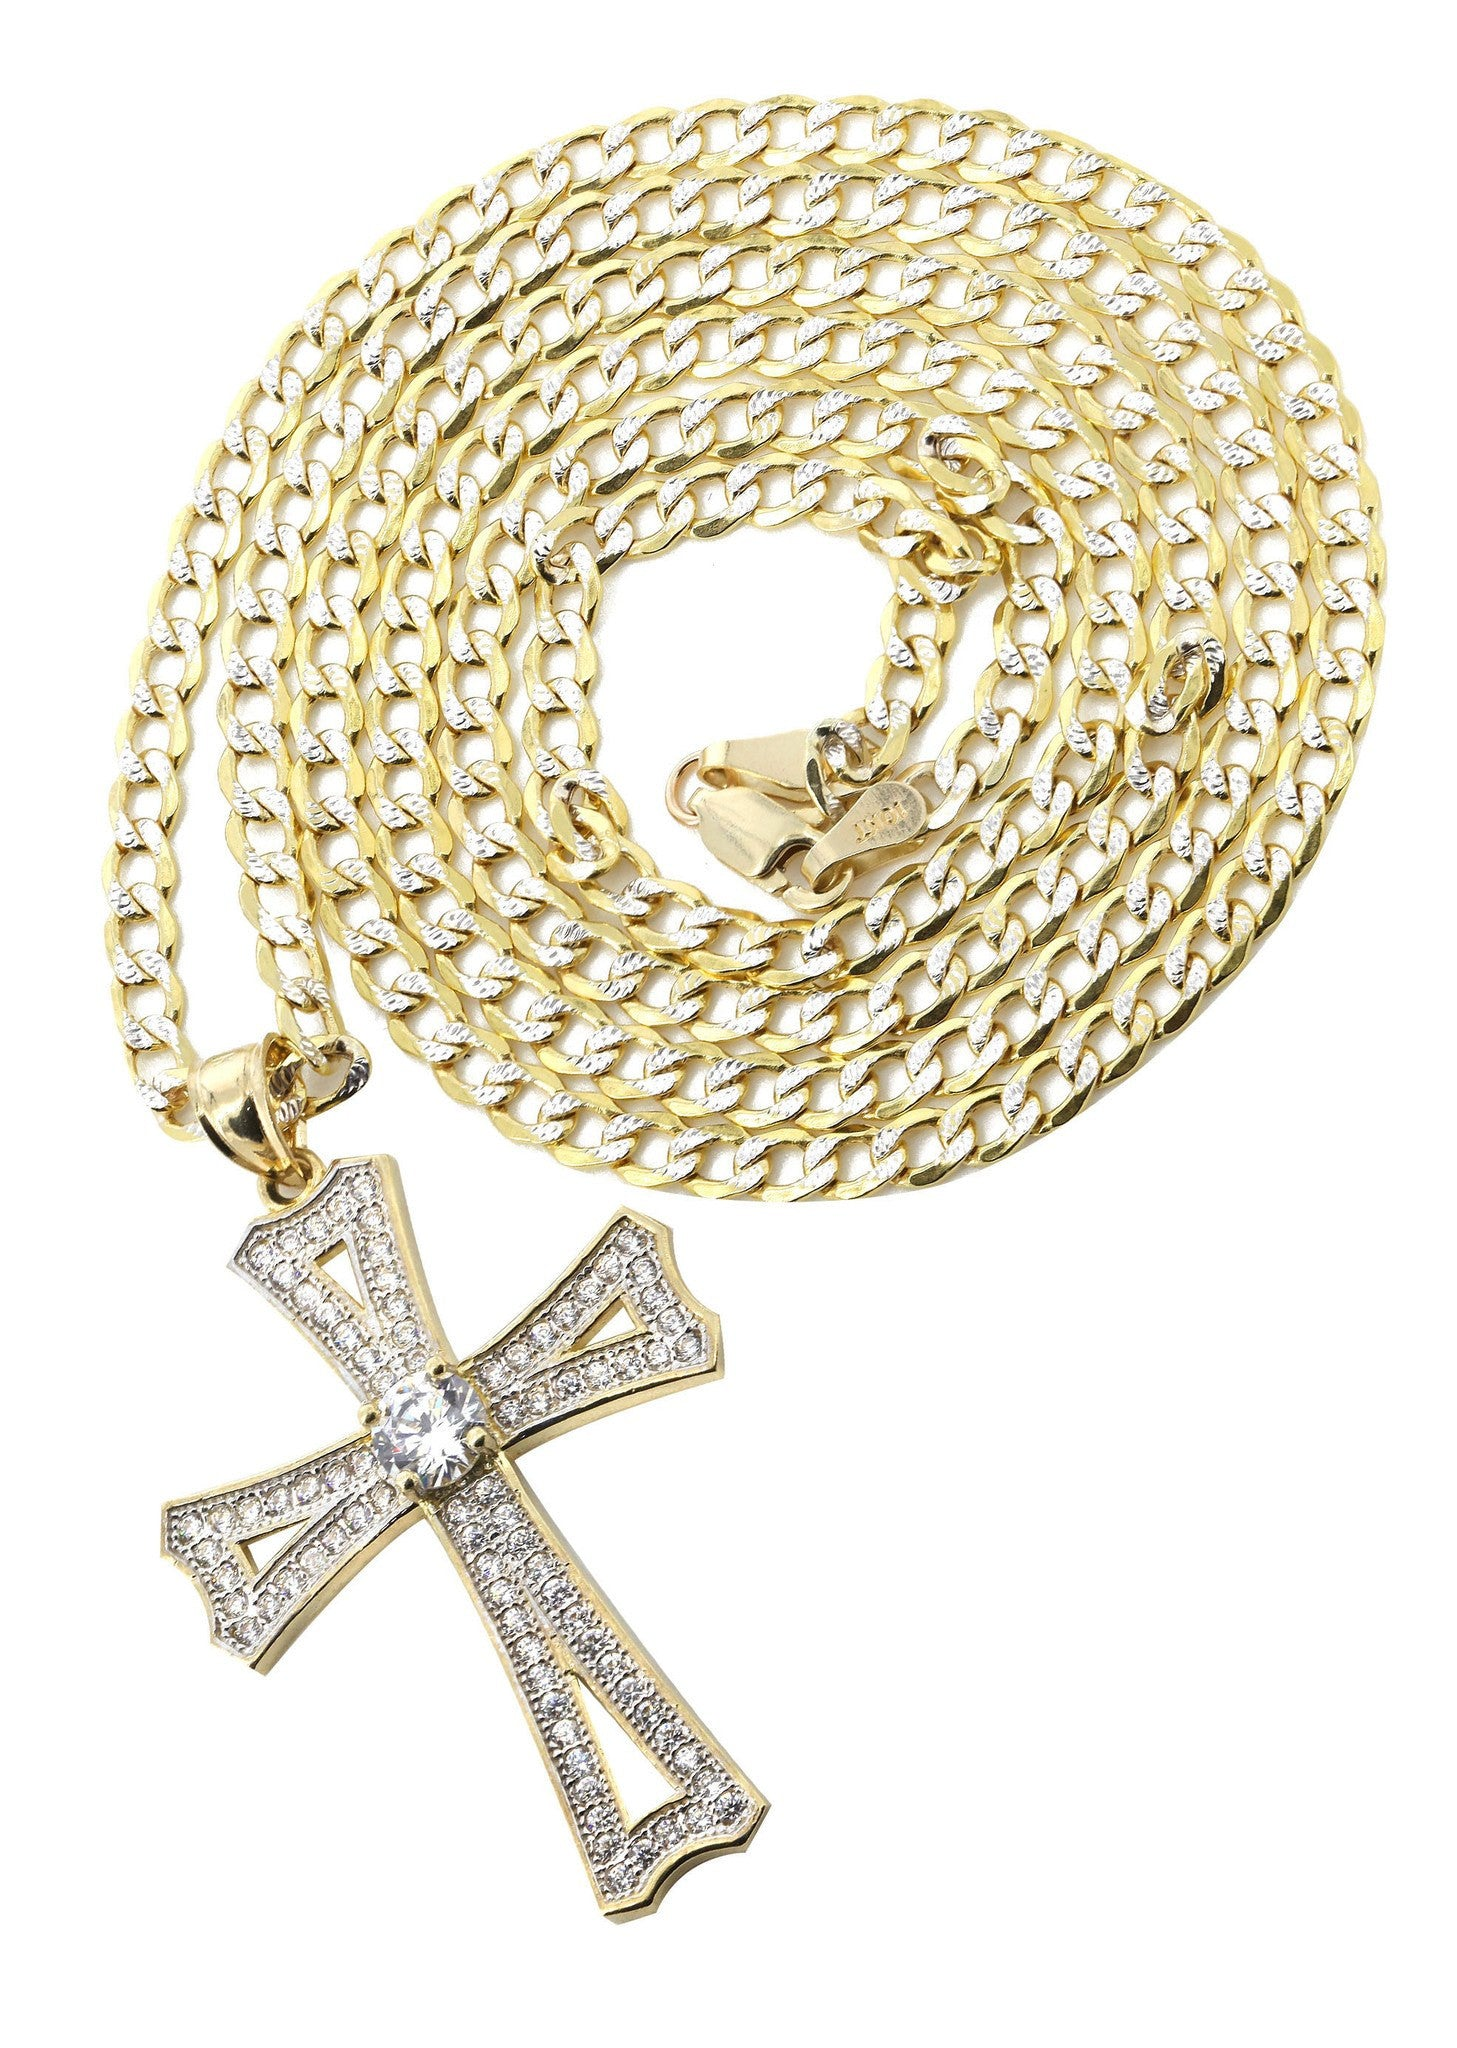 10K Yellow Gold Pave Cuban Chain & Cz Gold Cross Necklace / Appx. 8.9 Grams